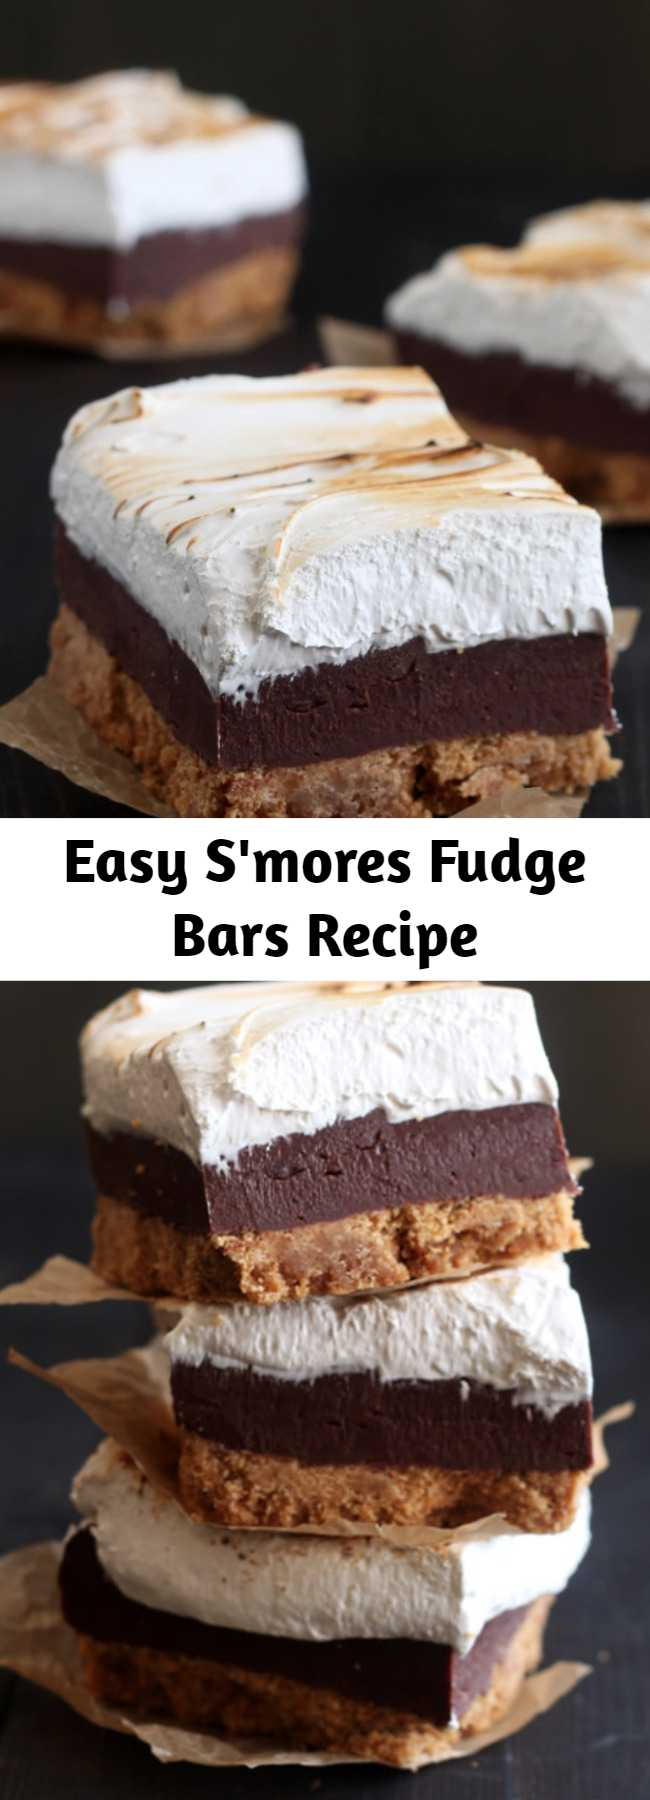 Easy S'mores Fudge Bars Recipe - S'mores Fudge Bars have a thick layer of buttery graham cracker crust, fudgy chocolate filling, and a homemade toasted marshmallow topping. Incredible! Perfect easy summer dessert recipe!